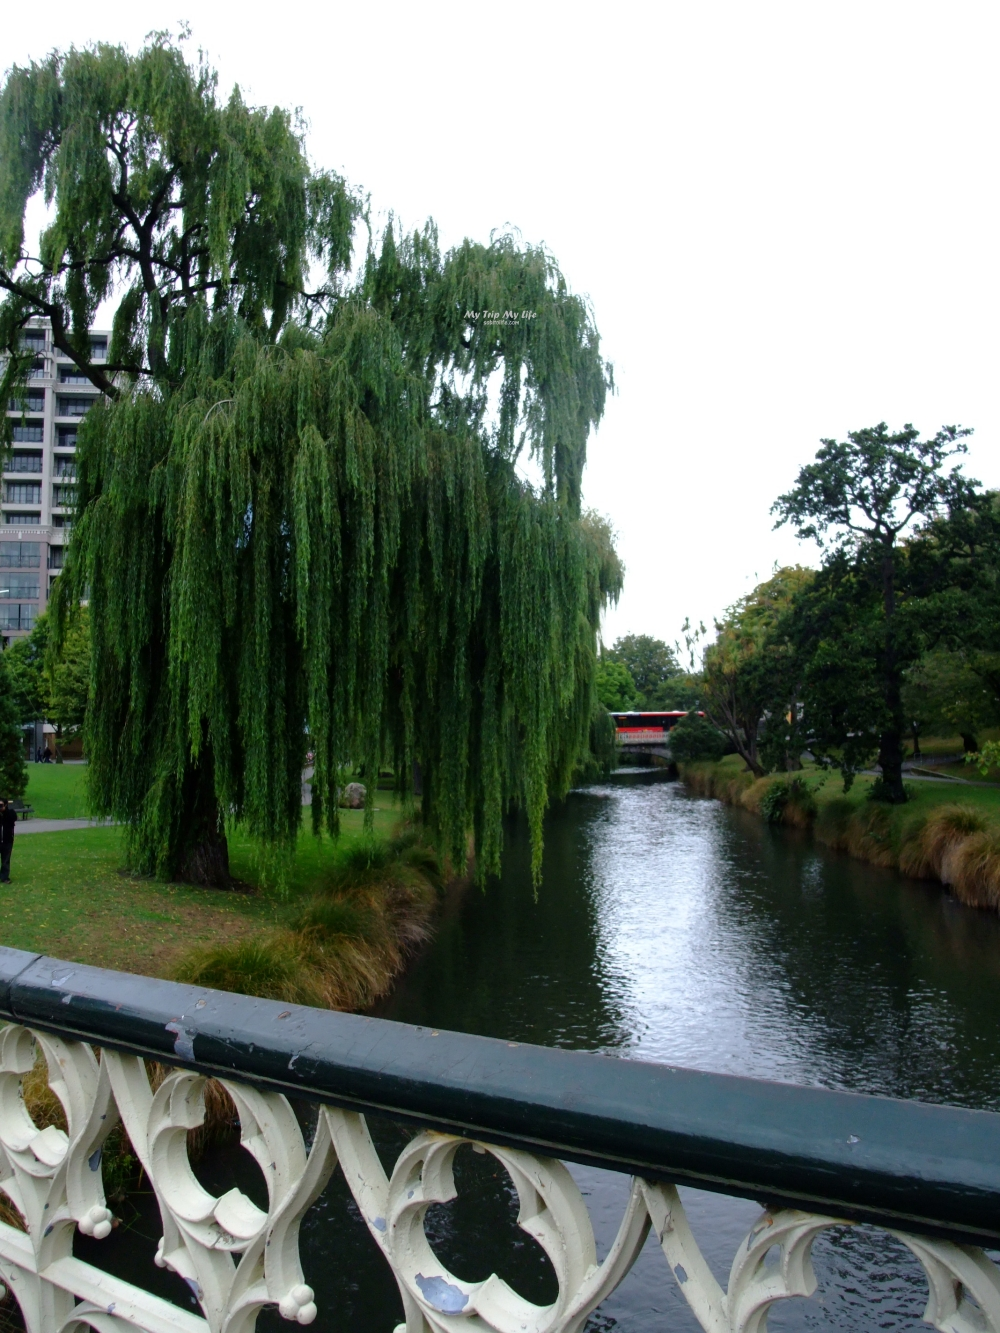 【紐西蘭旅行】南島基督城Christchurch、夢娜維爾花園Mona Vale Garden、回憶橋Bridge of Remembrance @MY TRIP ‧ MY LIFE